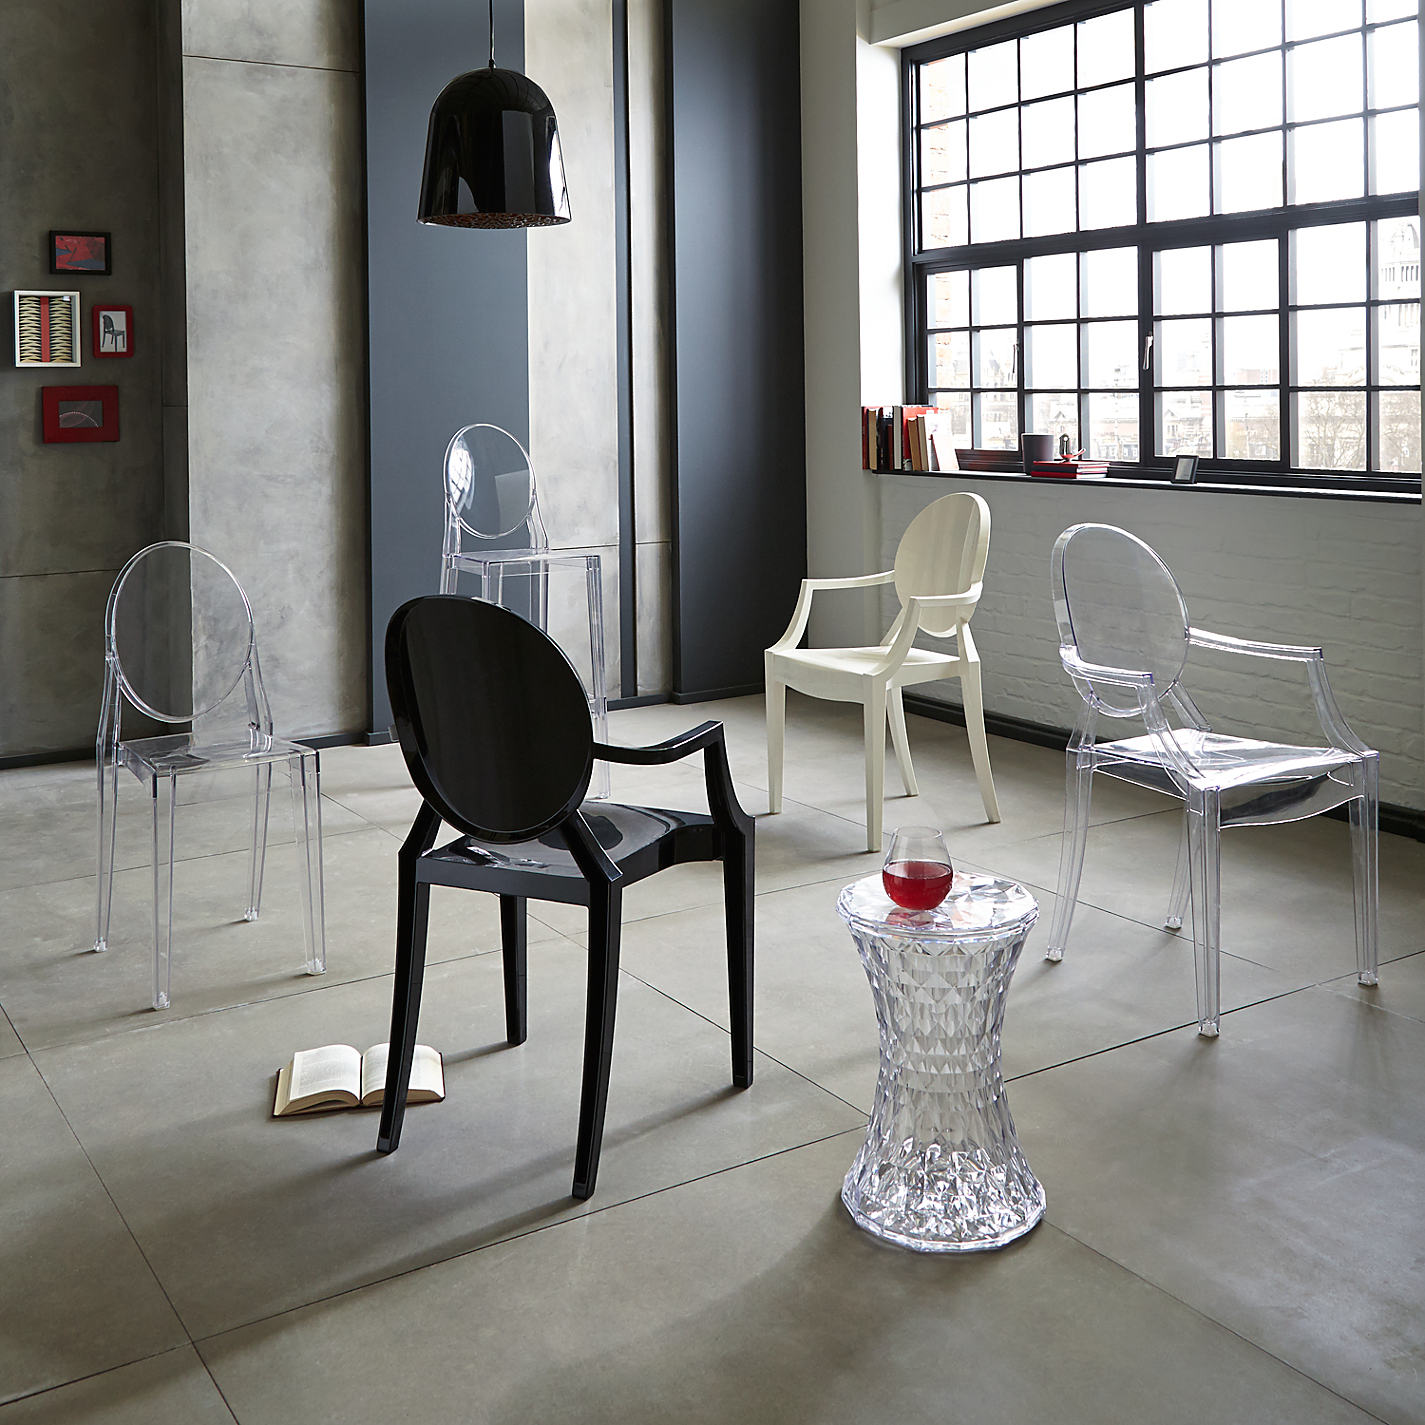 ... Buy Philippe Starck for Kartell Louis Ghost Chair Online at johnlewis.com & Buy Philippe Starck for Kartell Louis Ghost Chair | John Lewis islam-shia.org